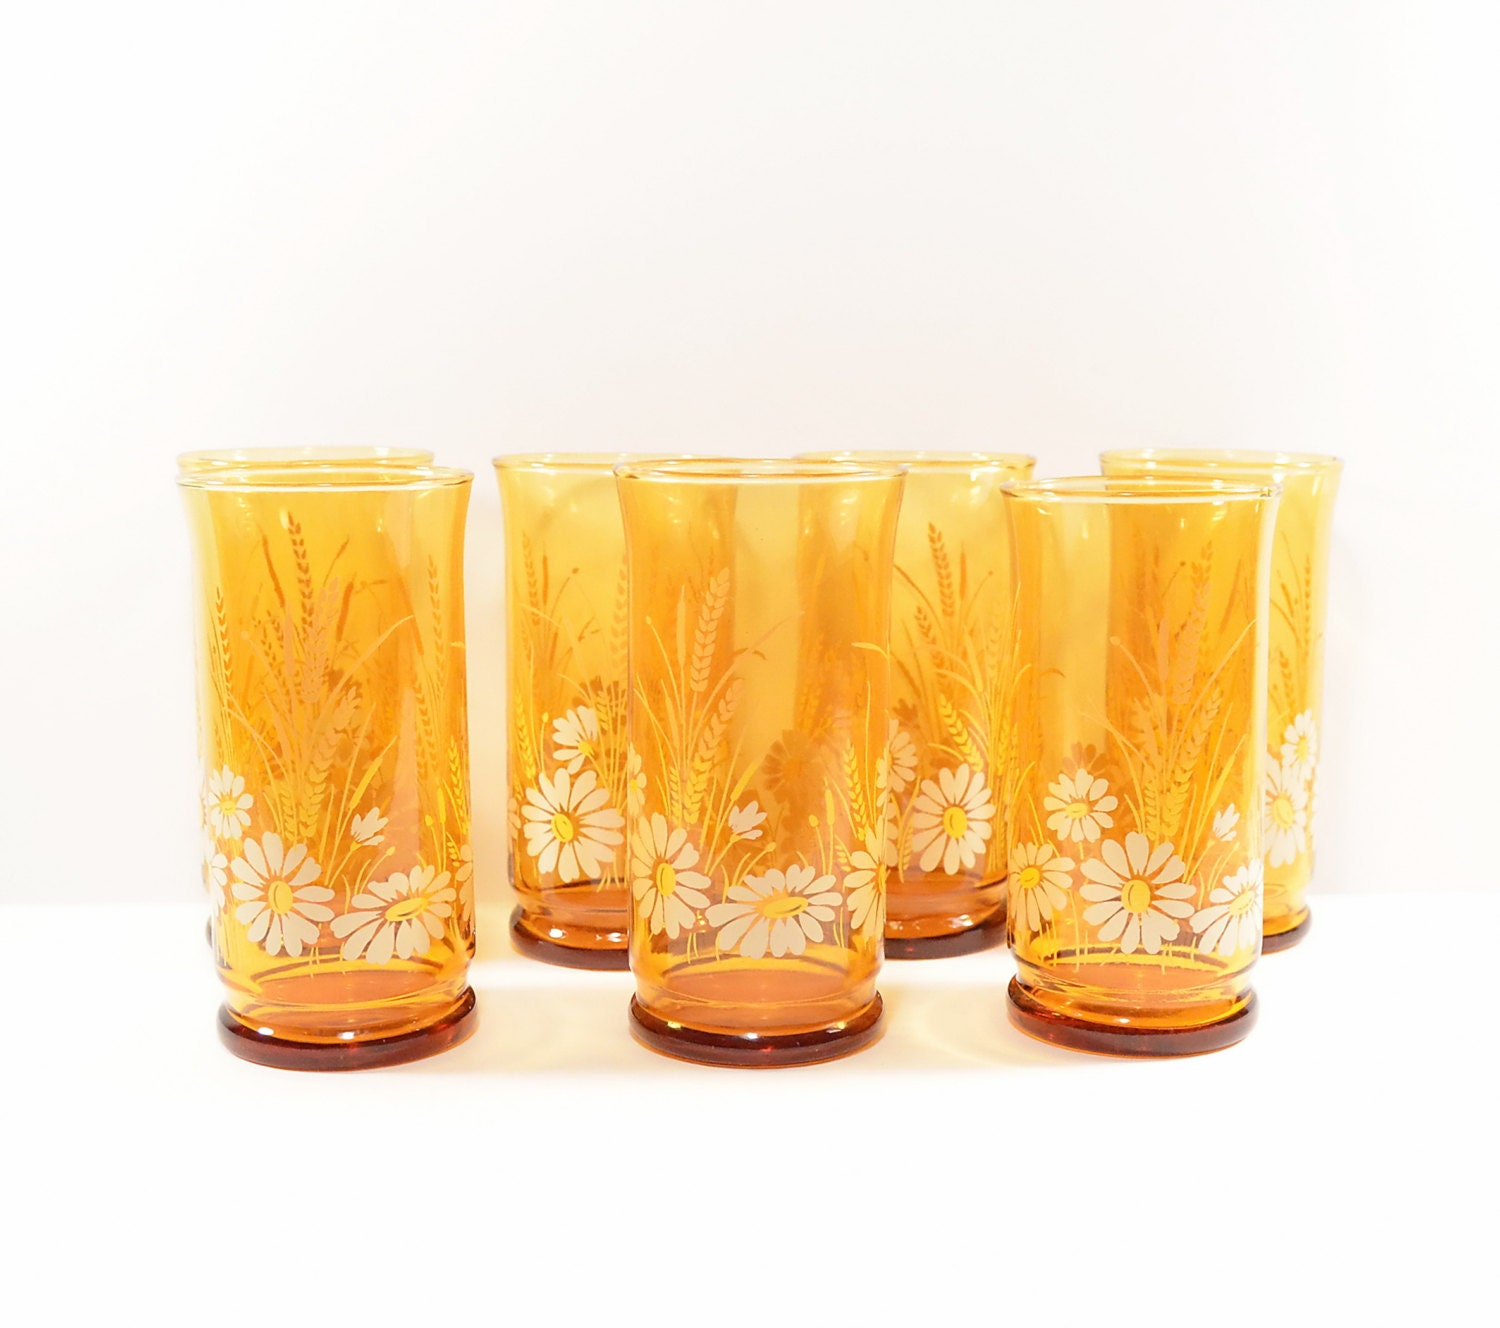 Vi n t a g e Libbey Daisy & Wheat Drinking Glasses Tumblers x 7 - NeedorWant